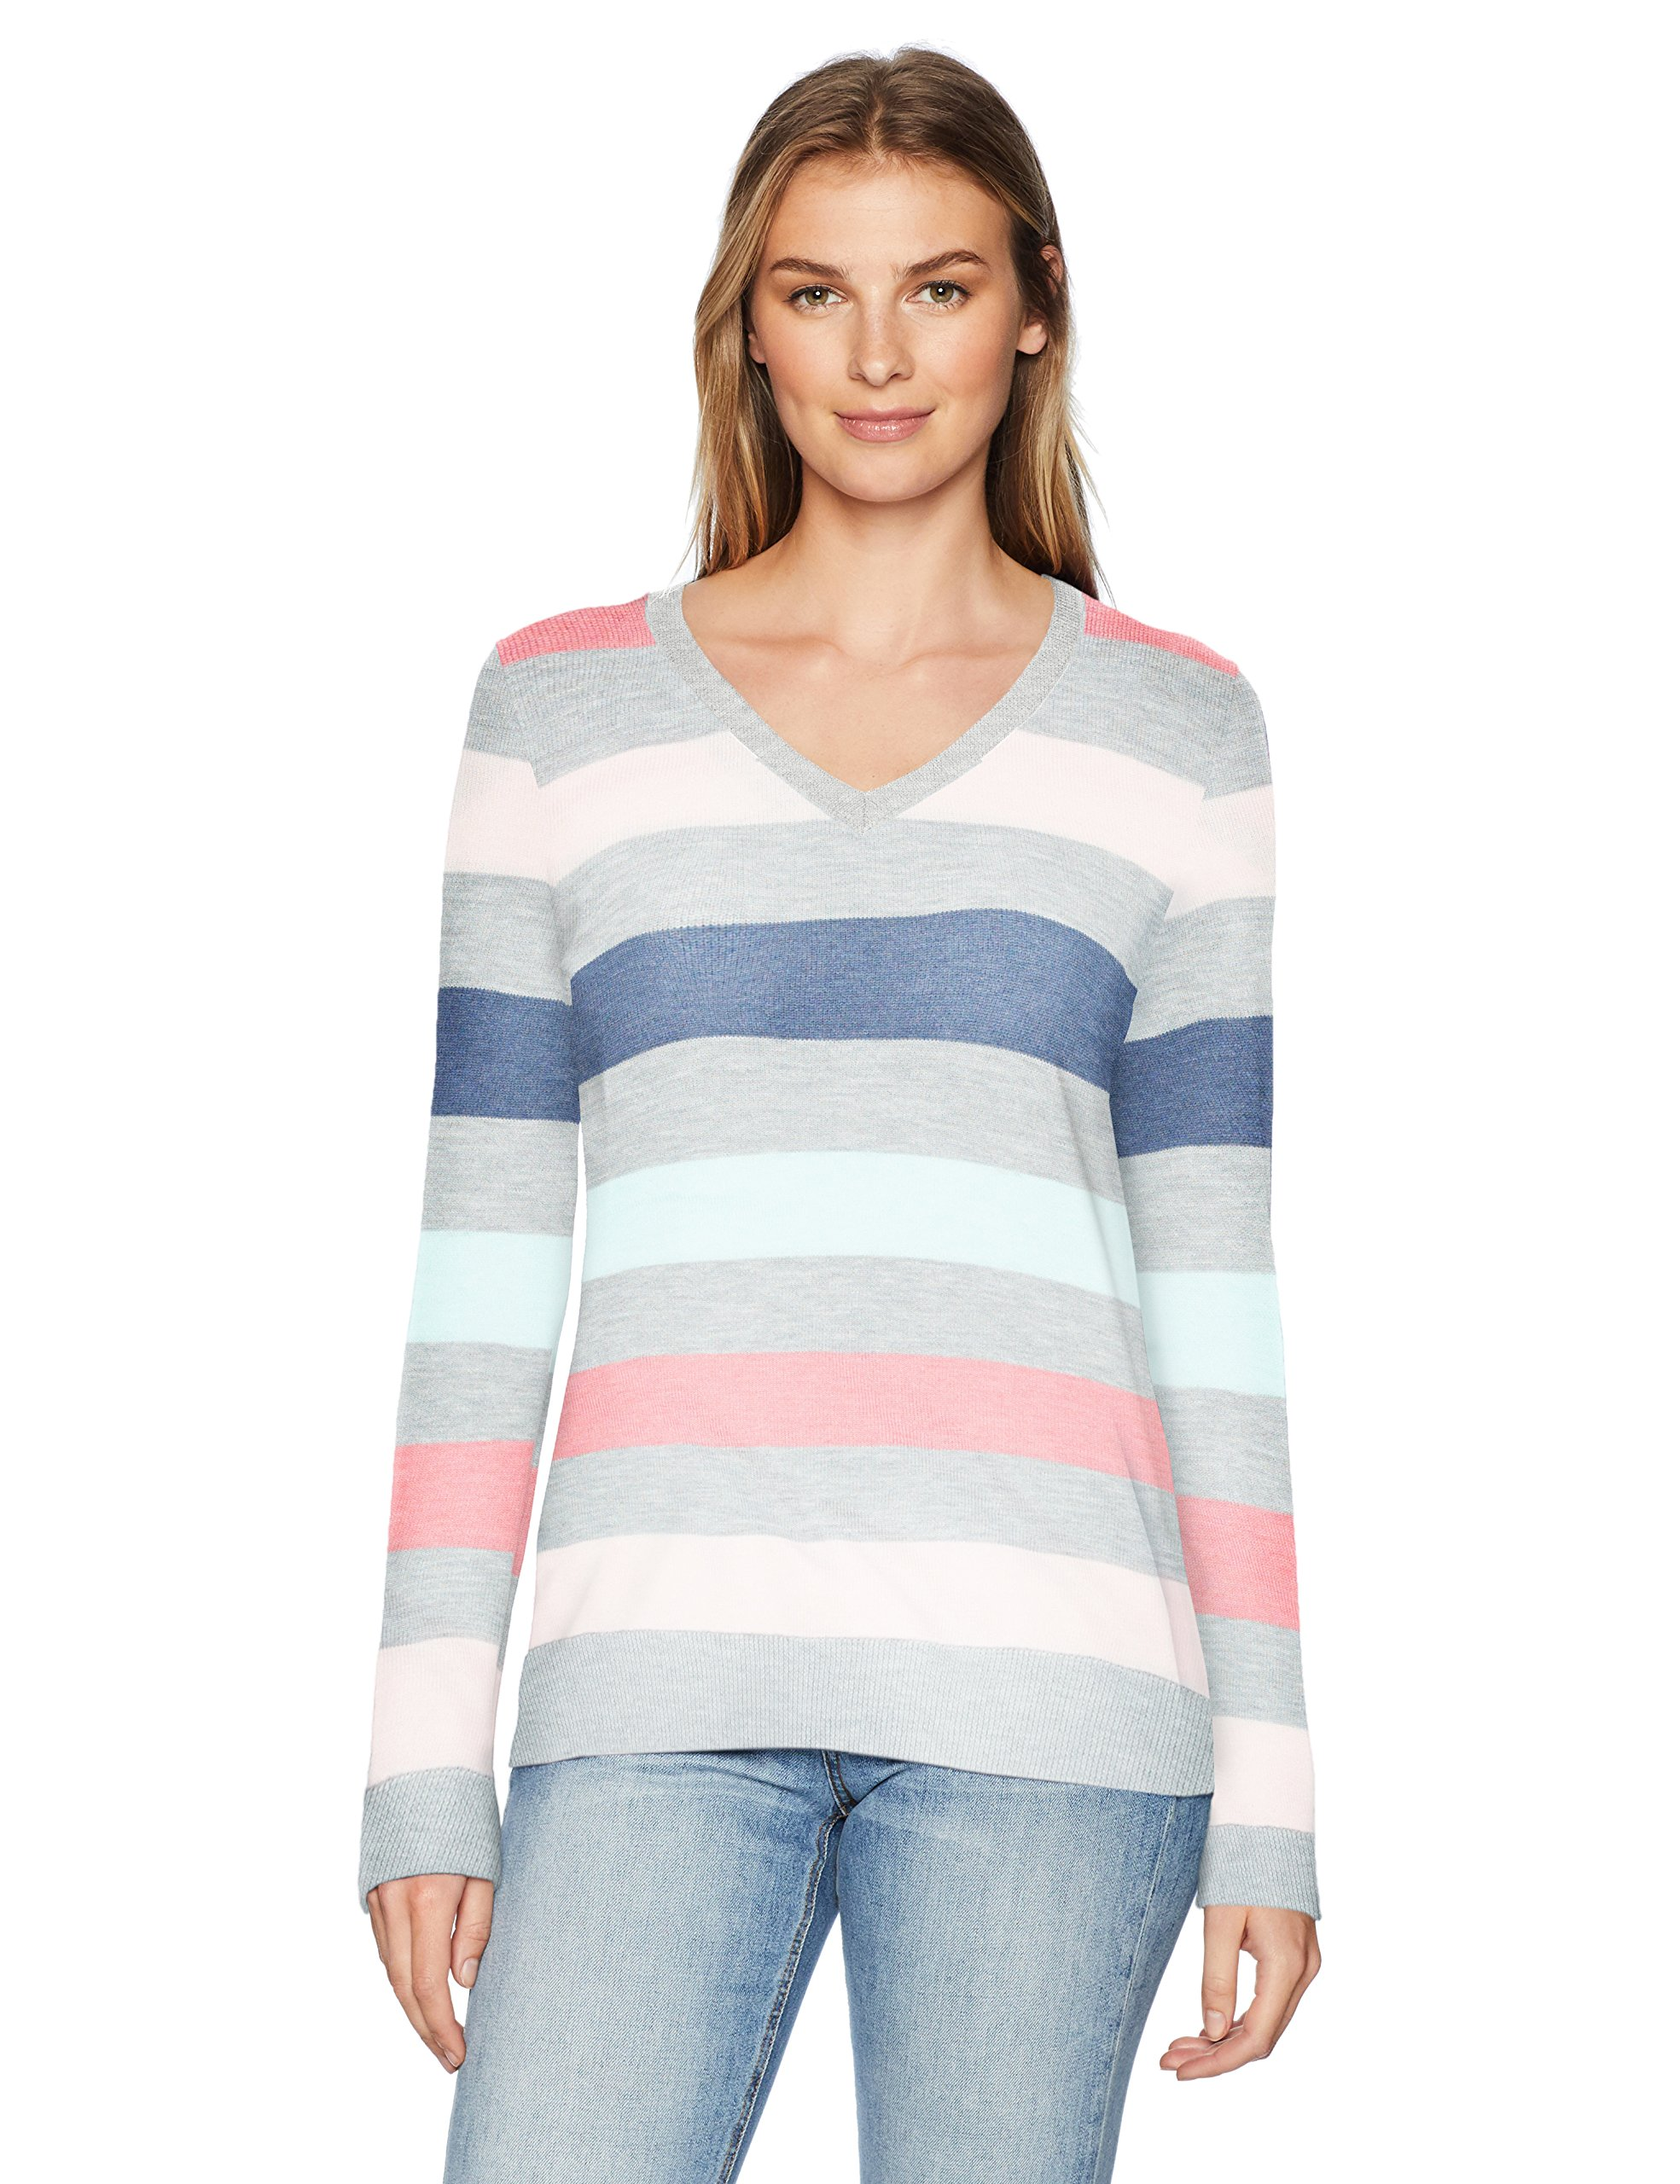 Amazon Essentials Women's Standard V-Neck Sweater, Pink/Light Grey Heather/Aqua/Navy Stripe, Large